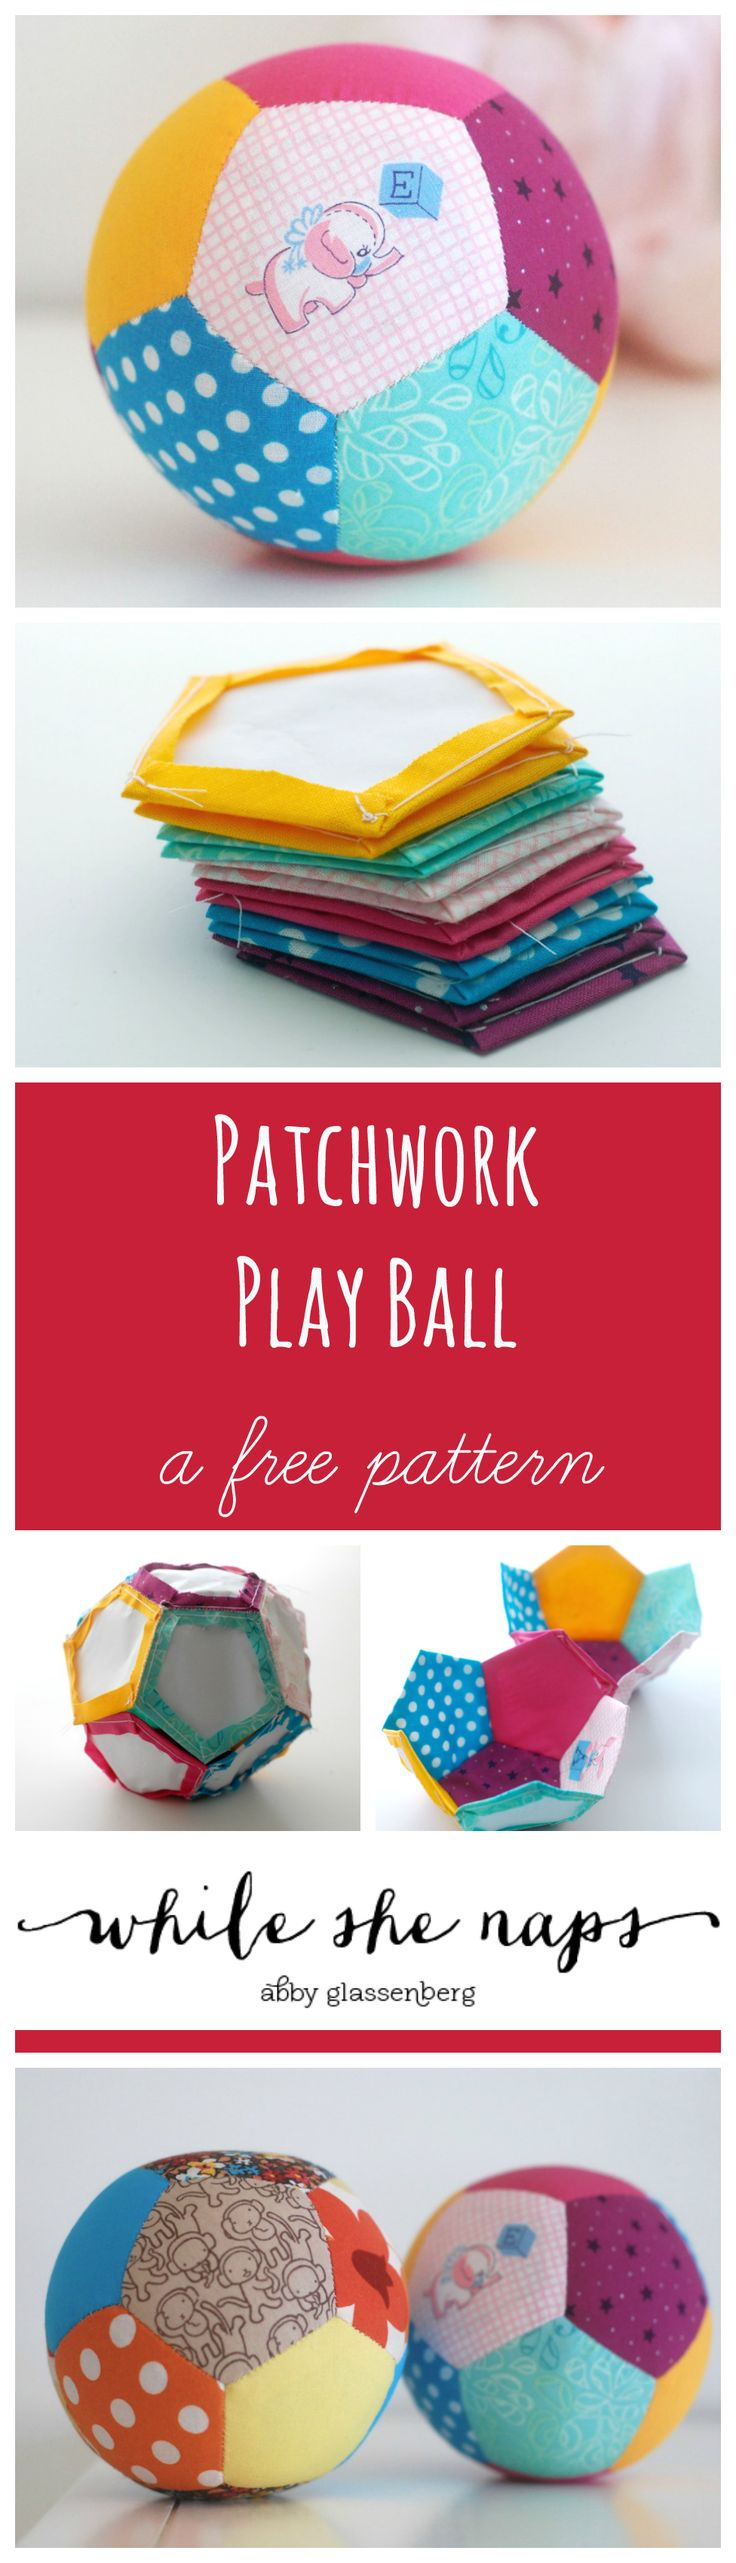 Patchwork Ball Collage More Más